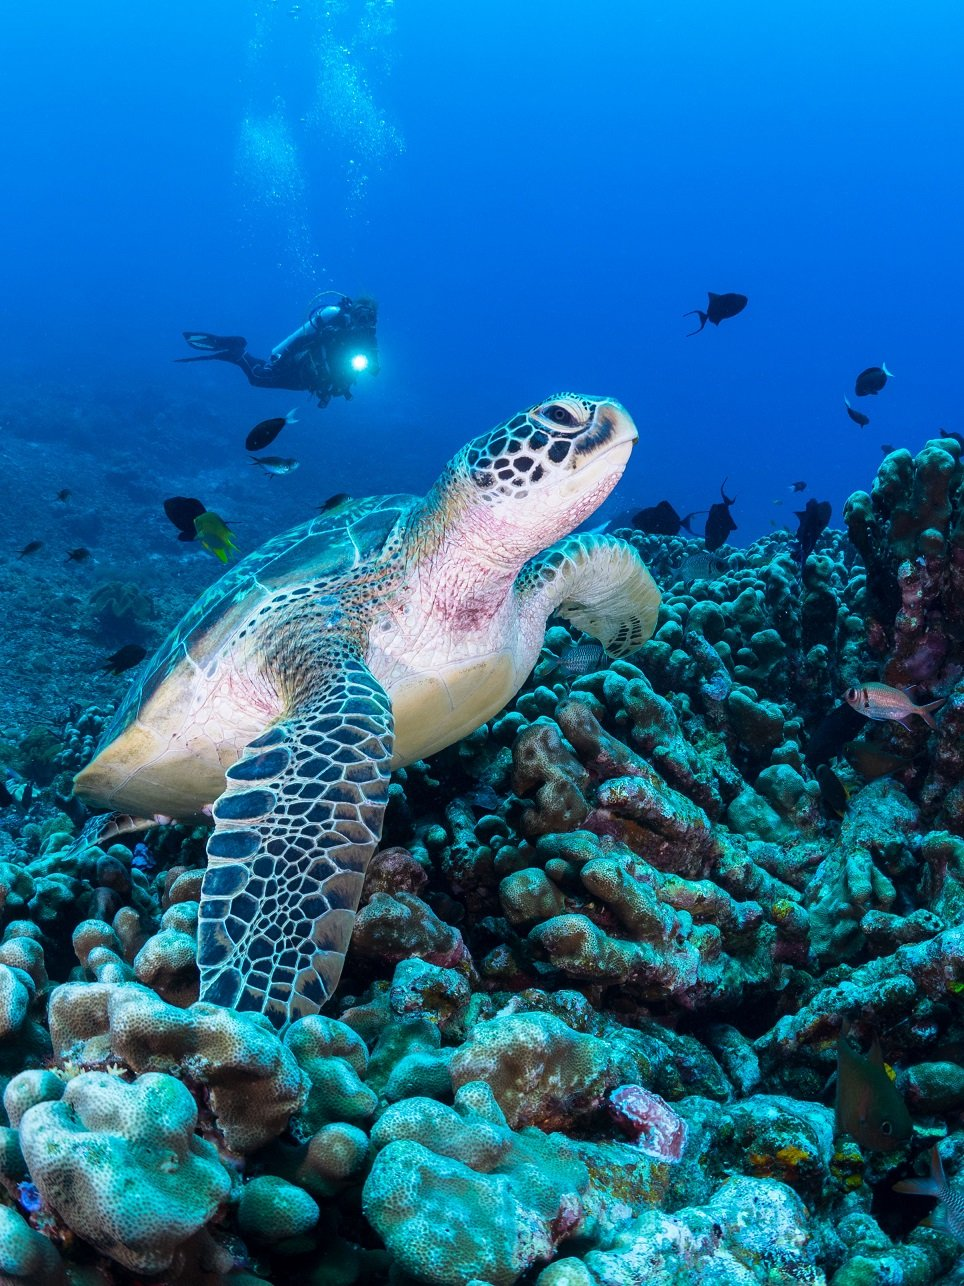 green turtle sitting on the reef with diver in the background encountered while diving with Papua Explorers